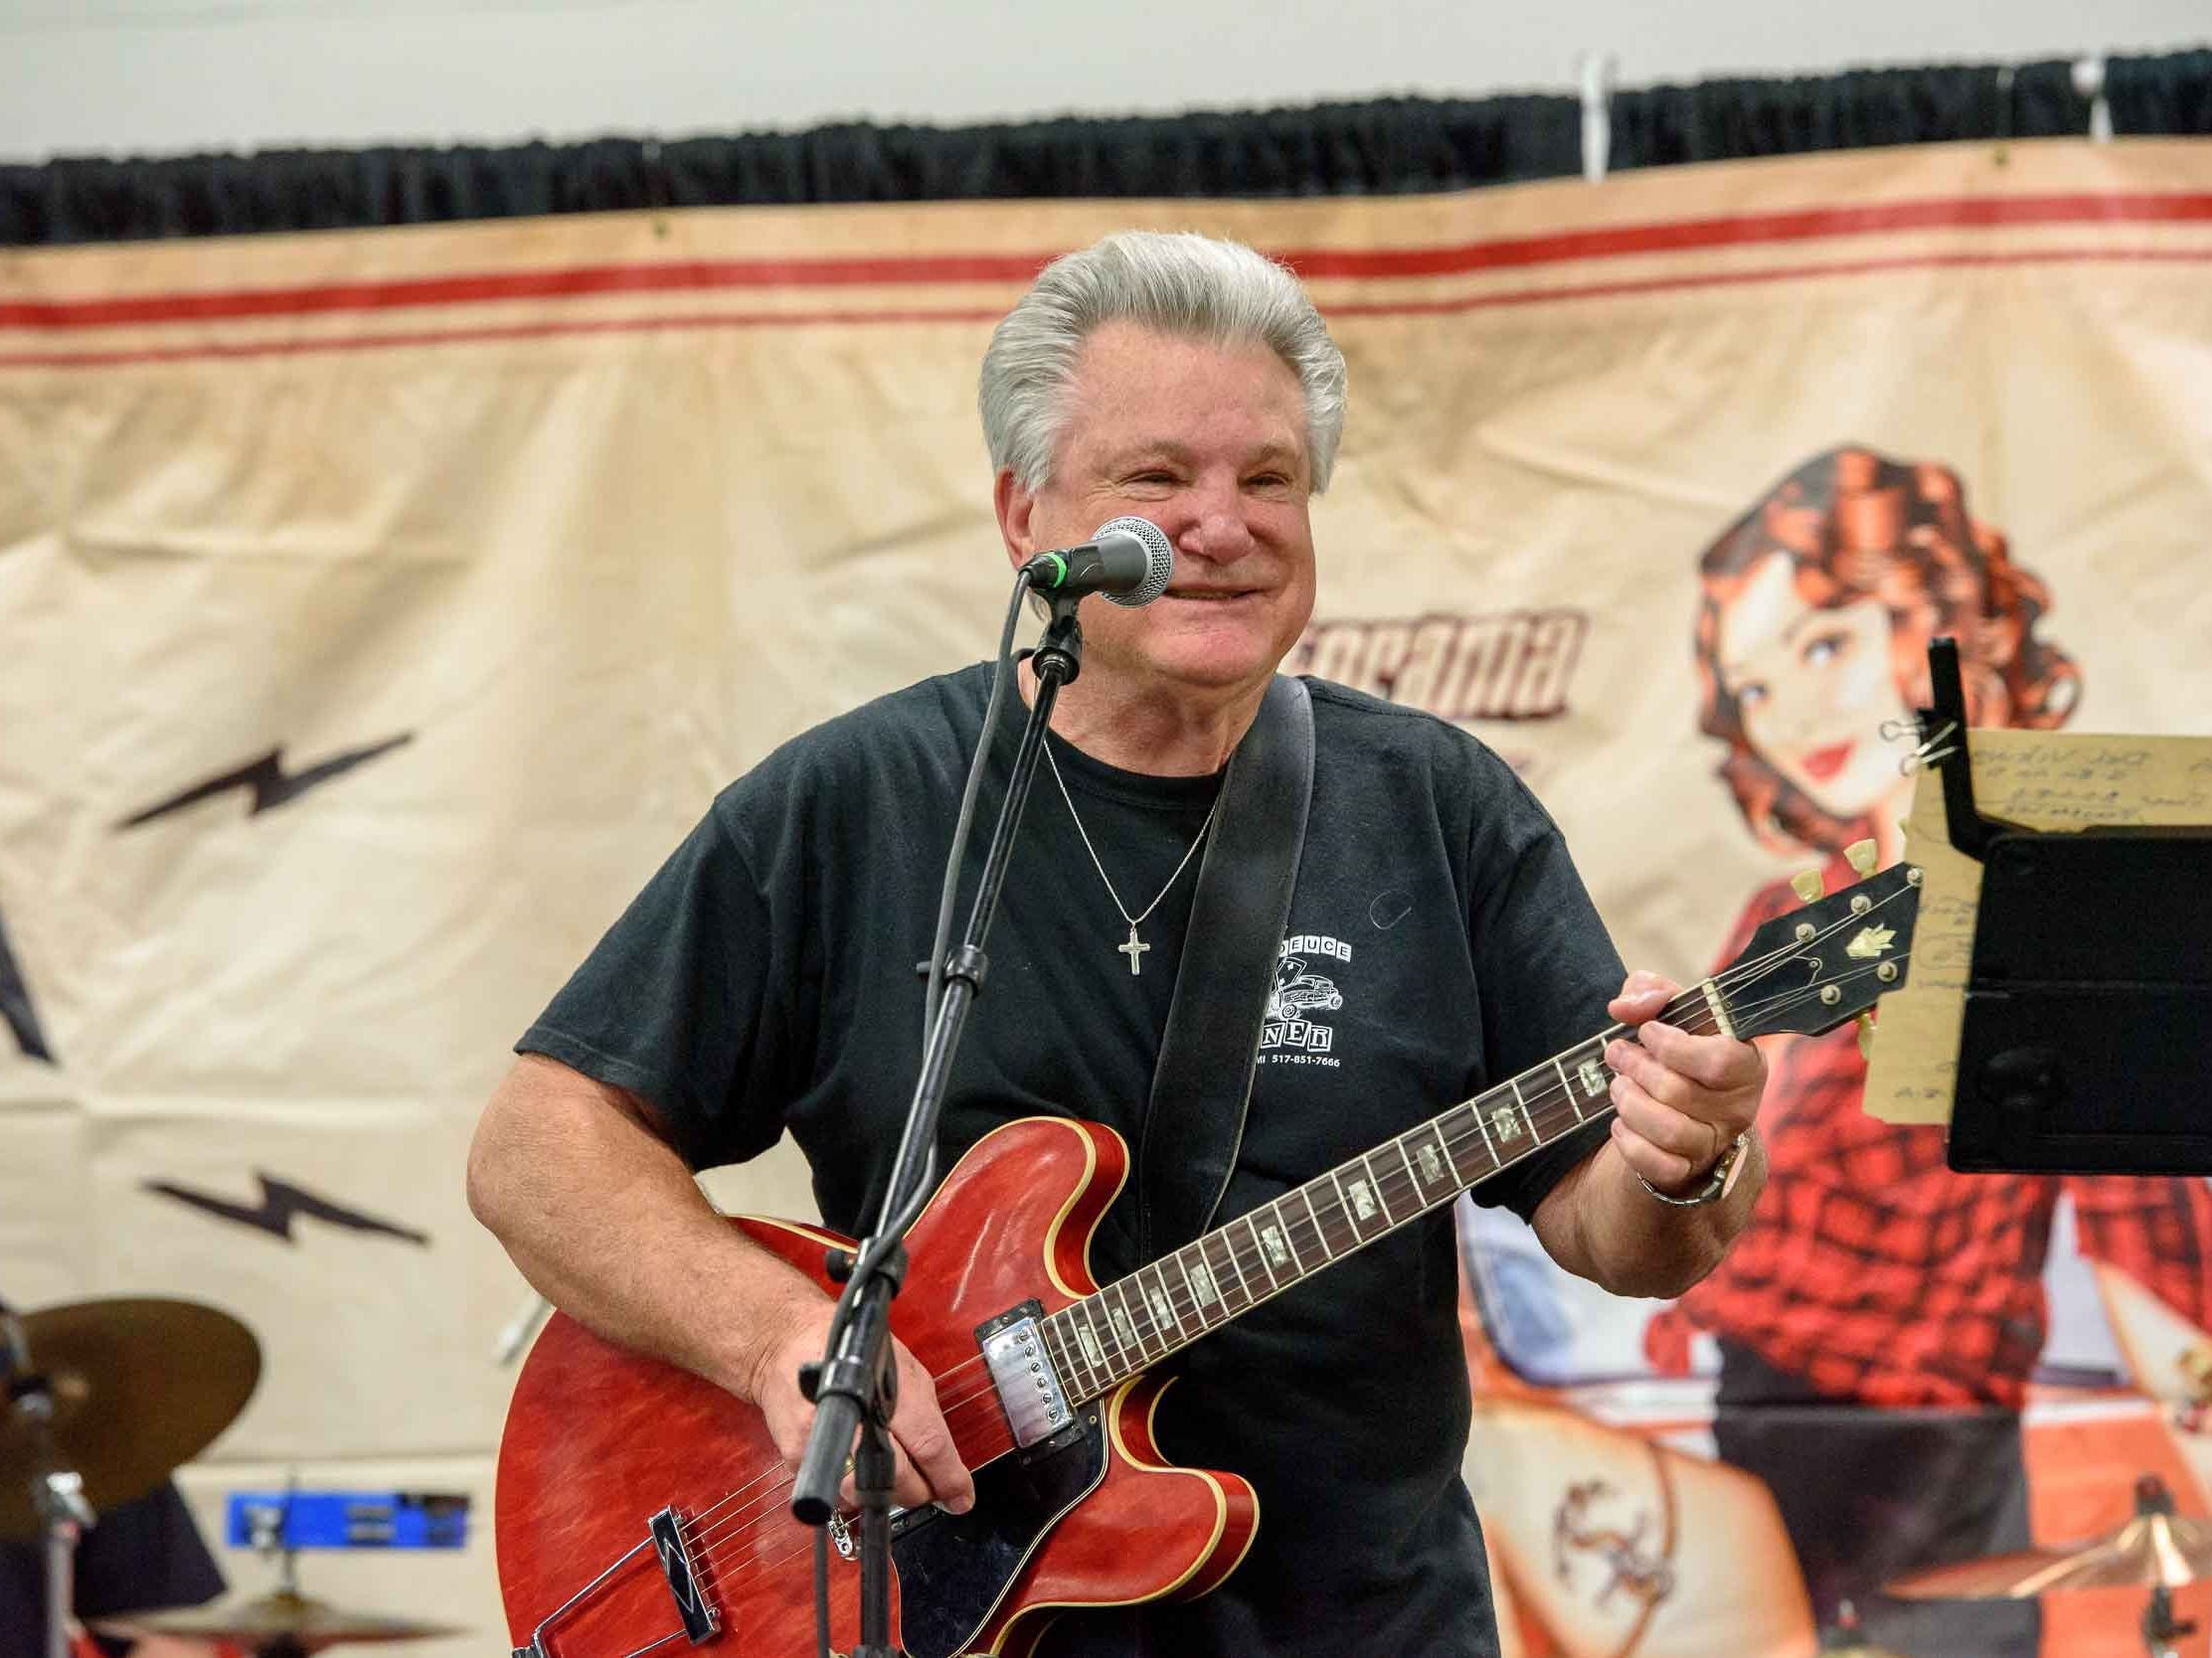 The Fast Eddie Band performed on the Vinsetta Garage stage during Autorama 2019 at Cobo Center, March 2, 2019.